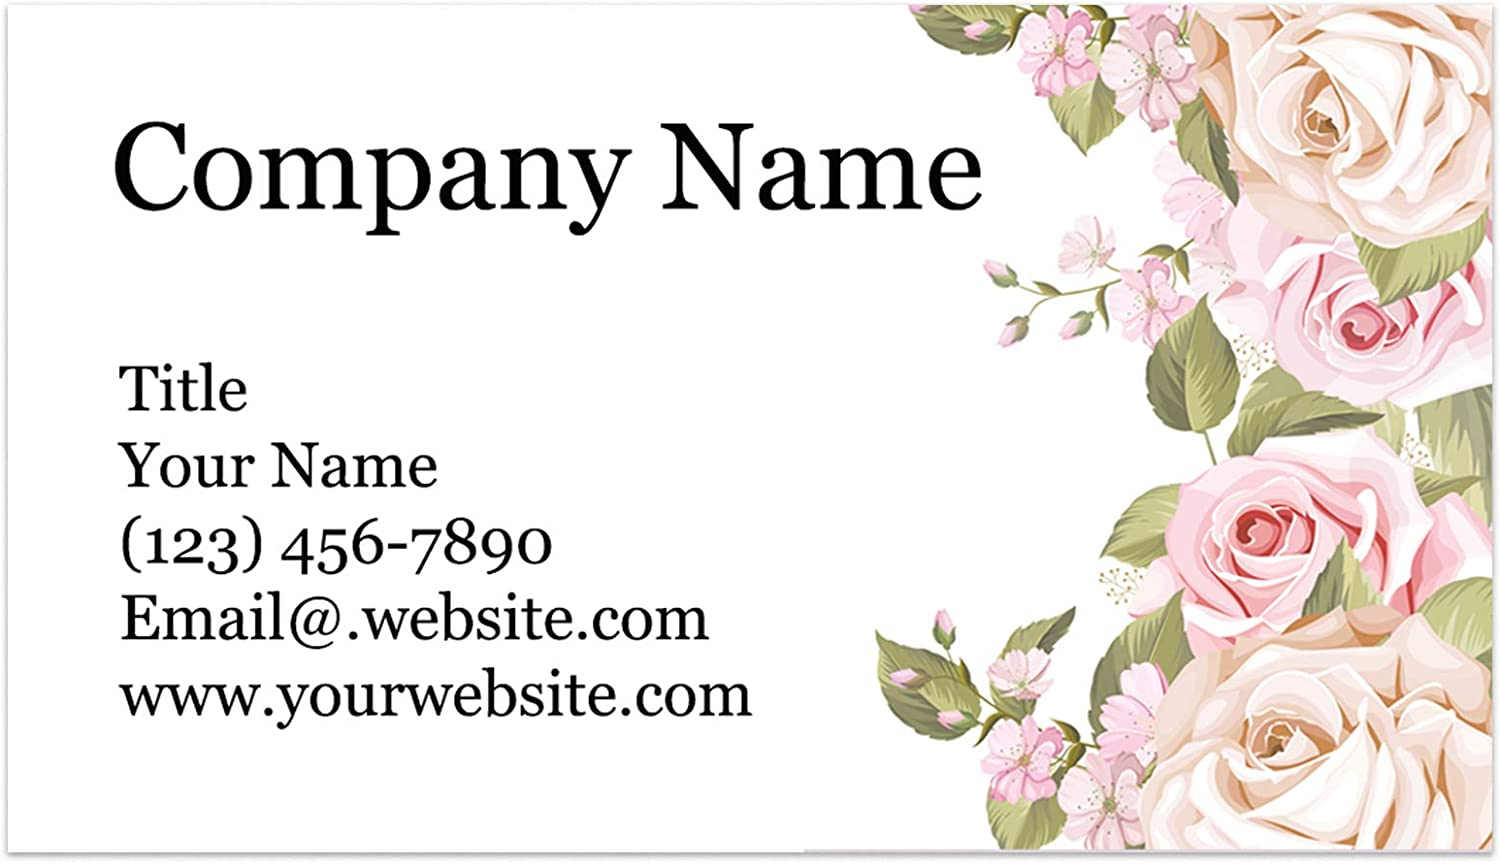 Custom Printed Dedication 100% Recycled Max 75% OFF Card Stock - Thick S Cards Business